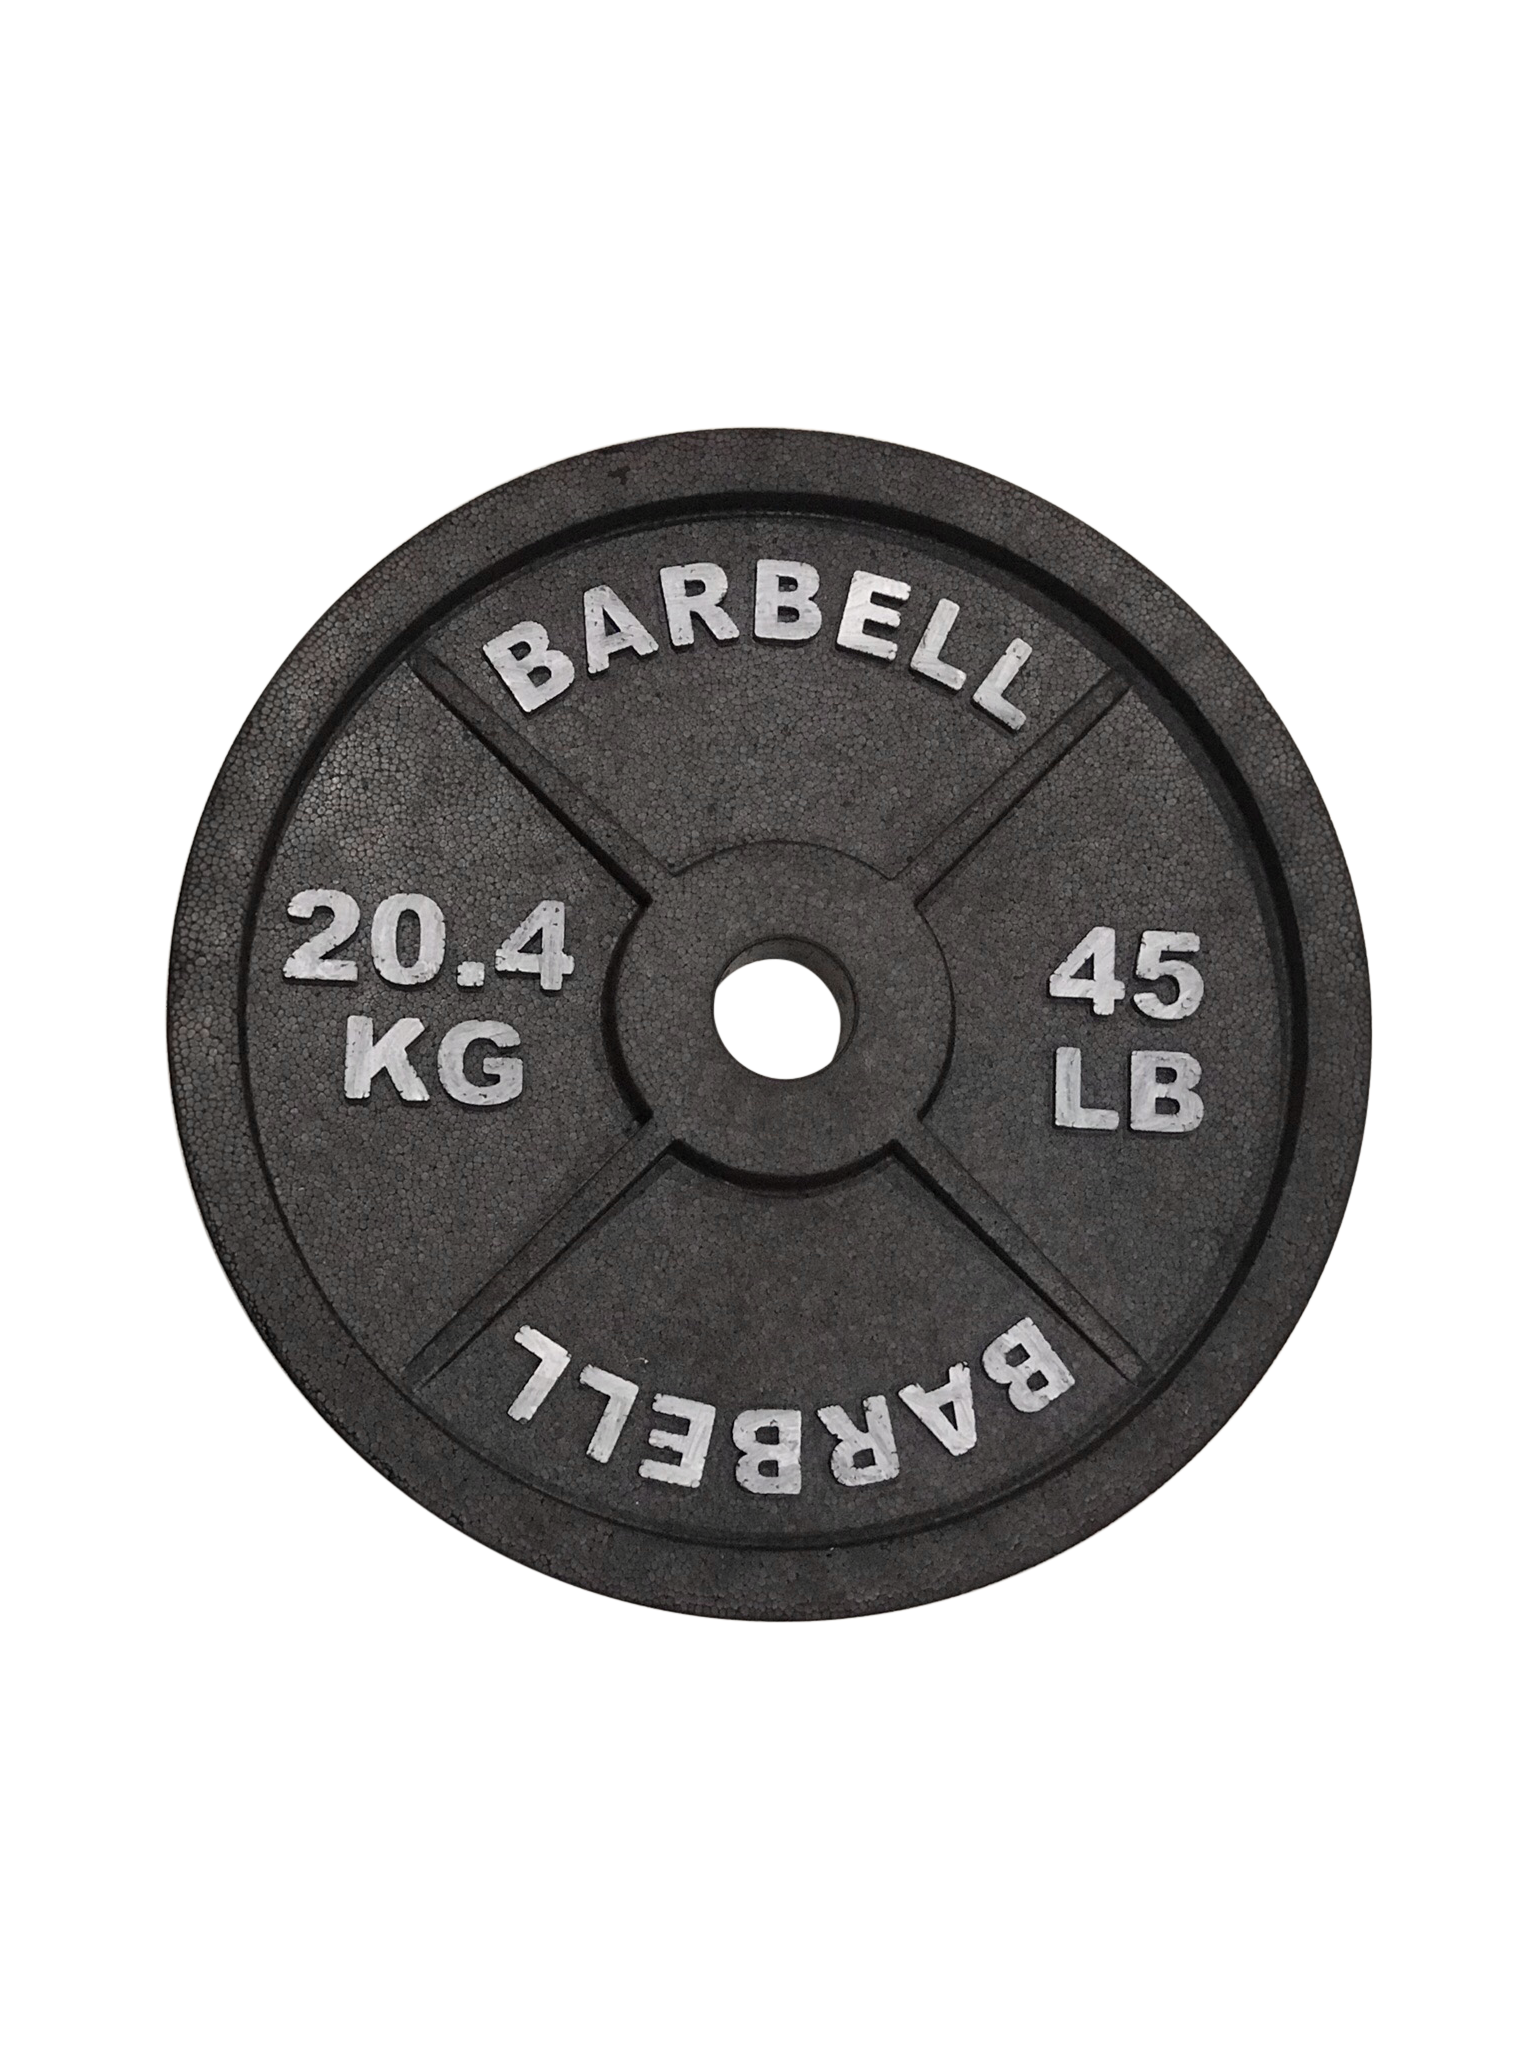 Weight plate PNG images free download.